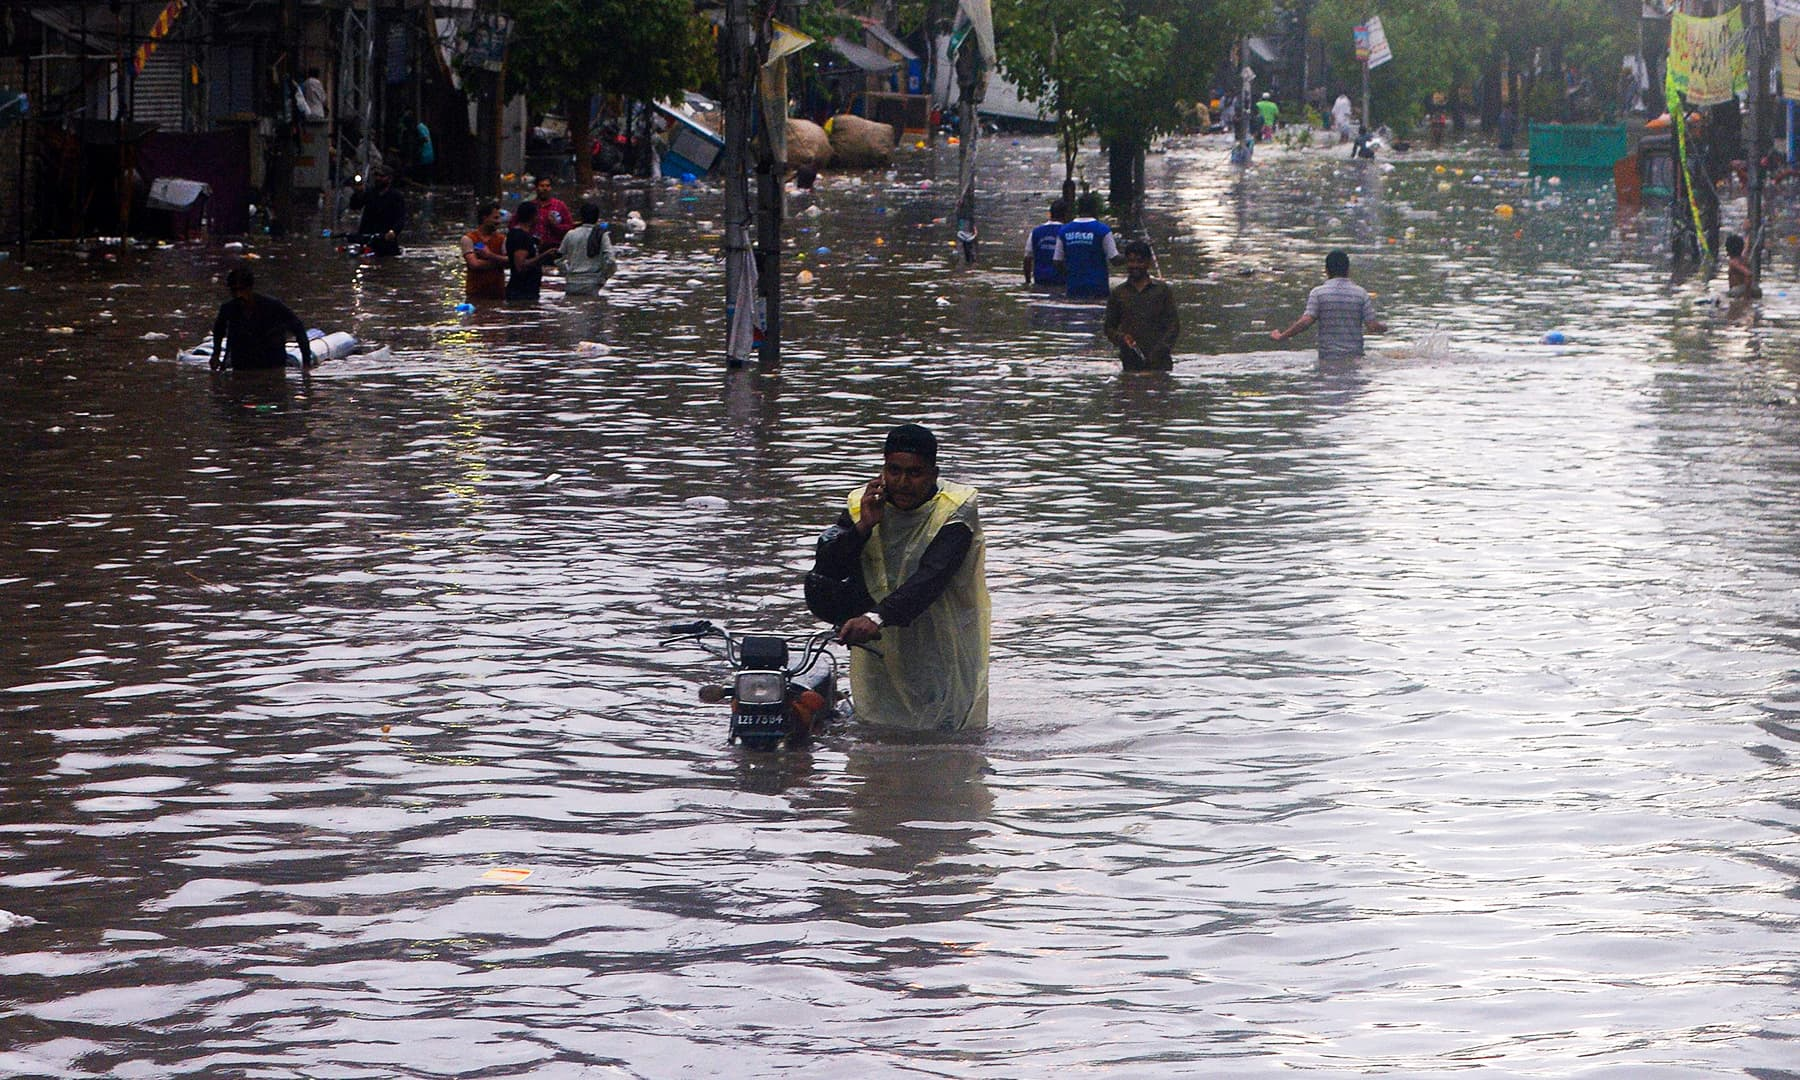 A man speaks on his phone while pushing his bike along a flooded street in Lahore. — Reuters